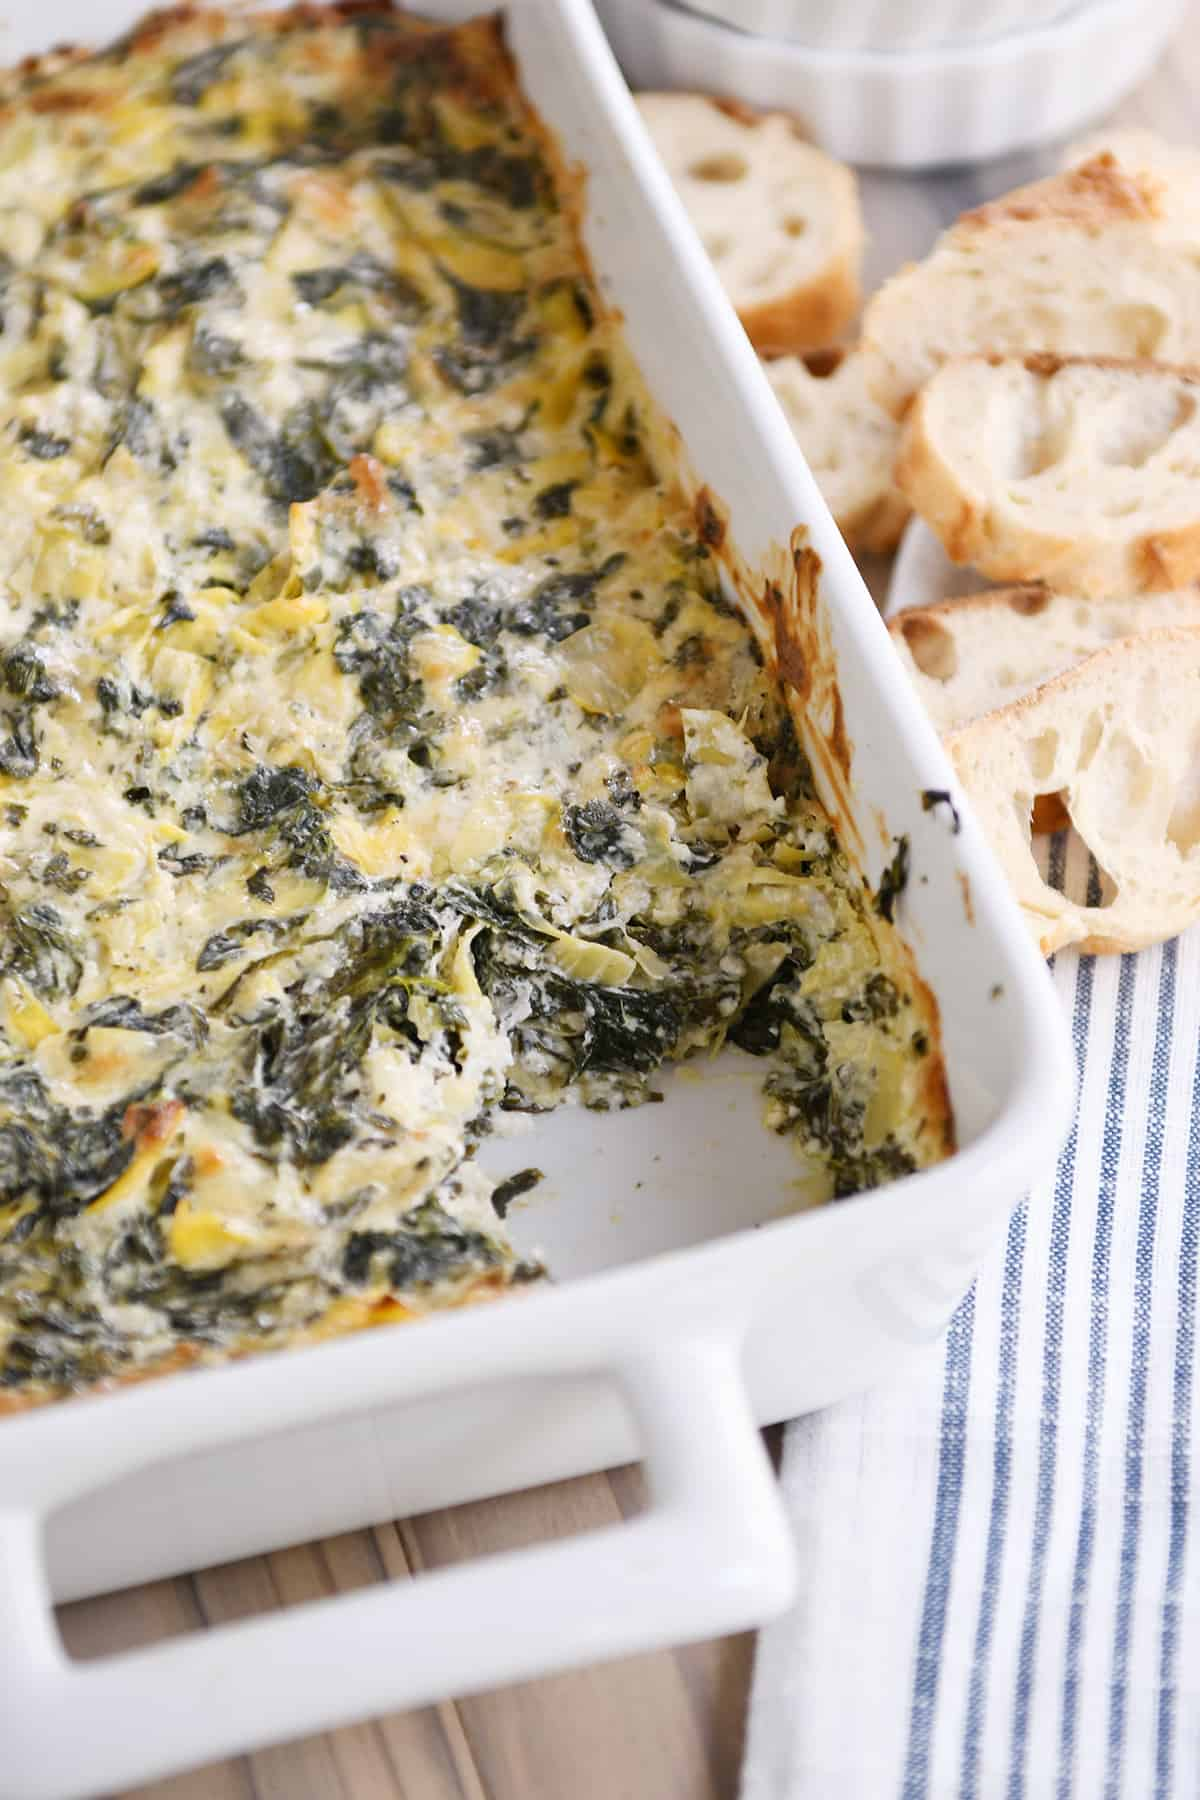 White pan with the best spinach artichoke dip.